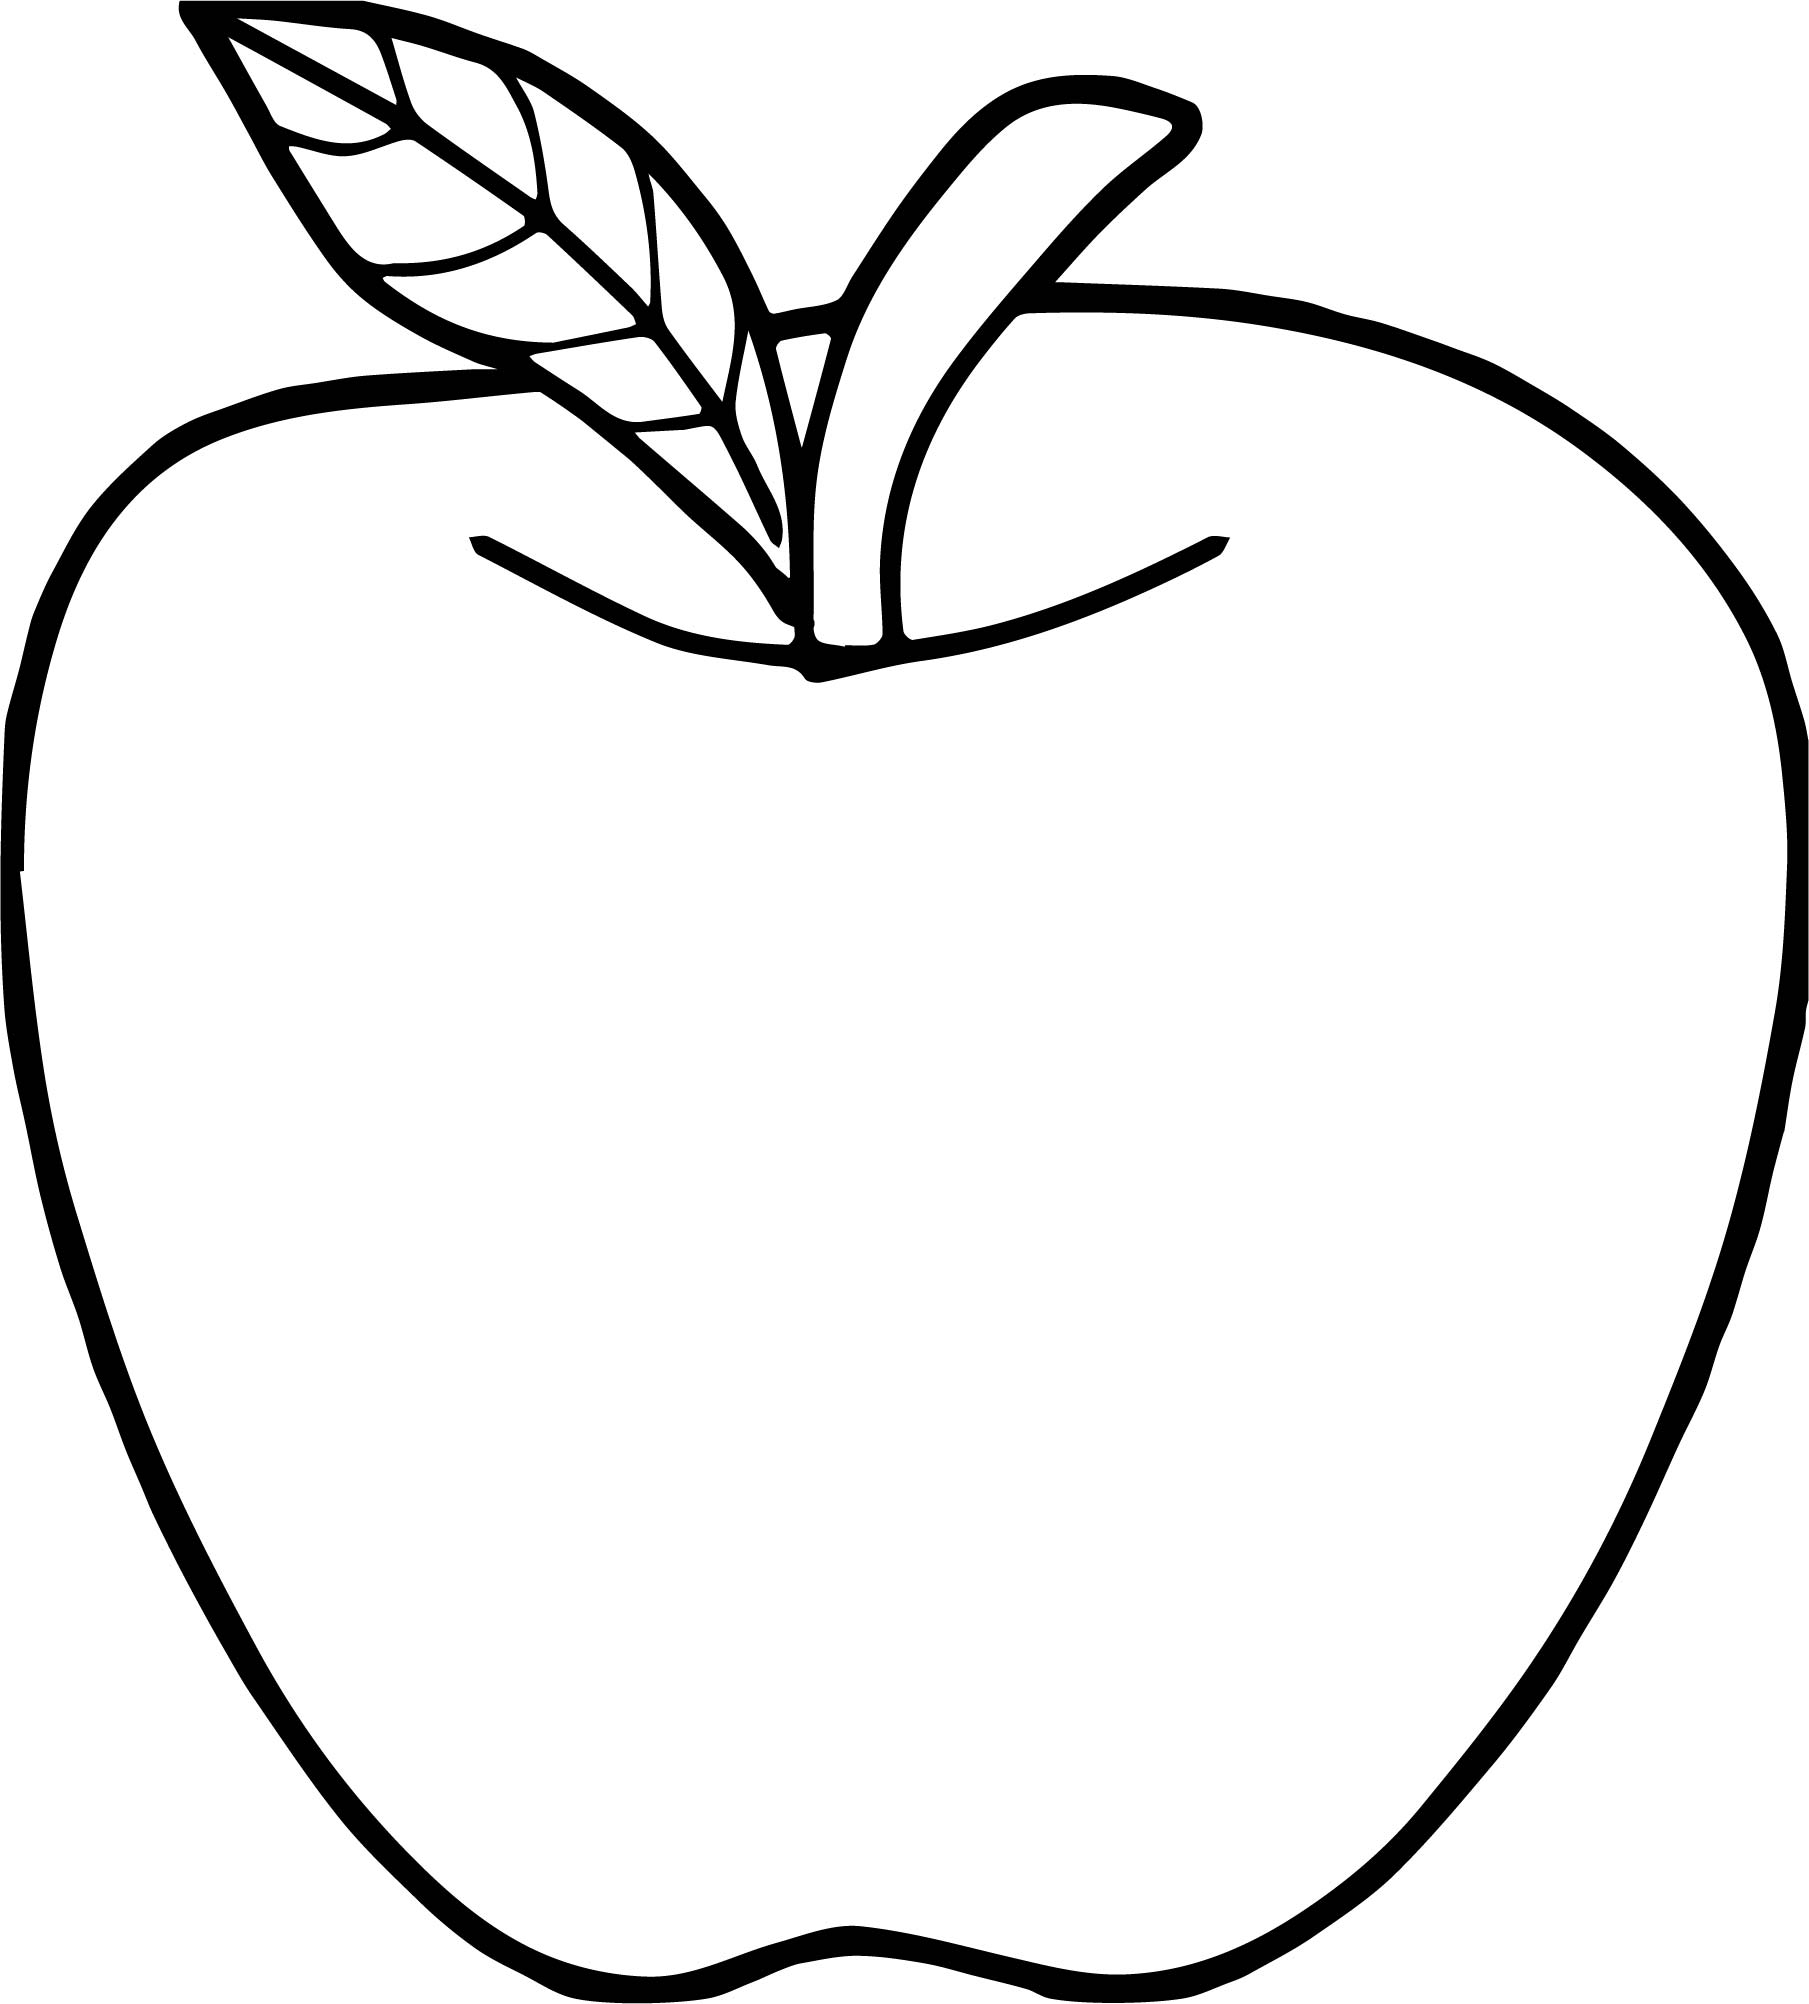 coloring image of an apple free printable apple coloring pages for kids of image apple an coloring